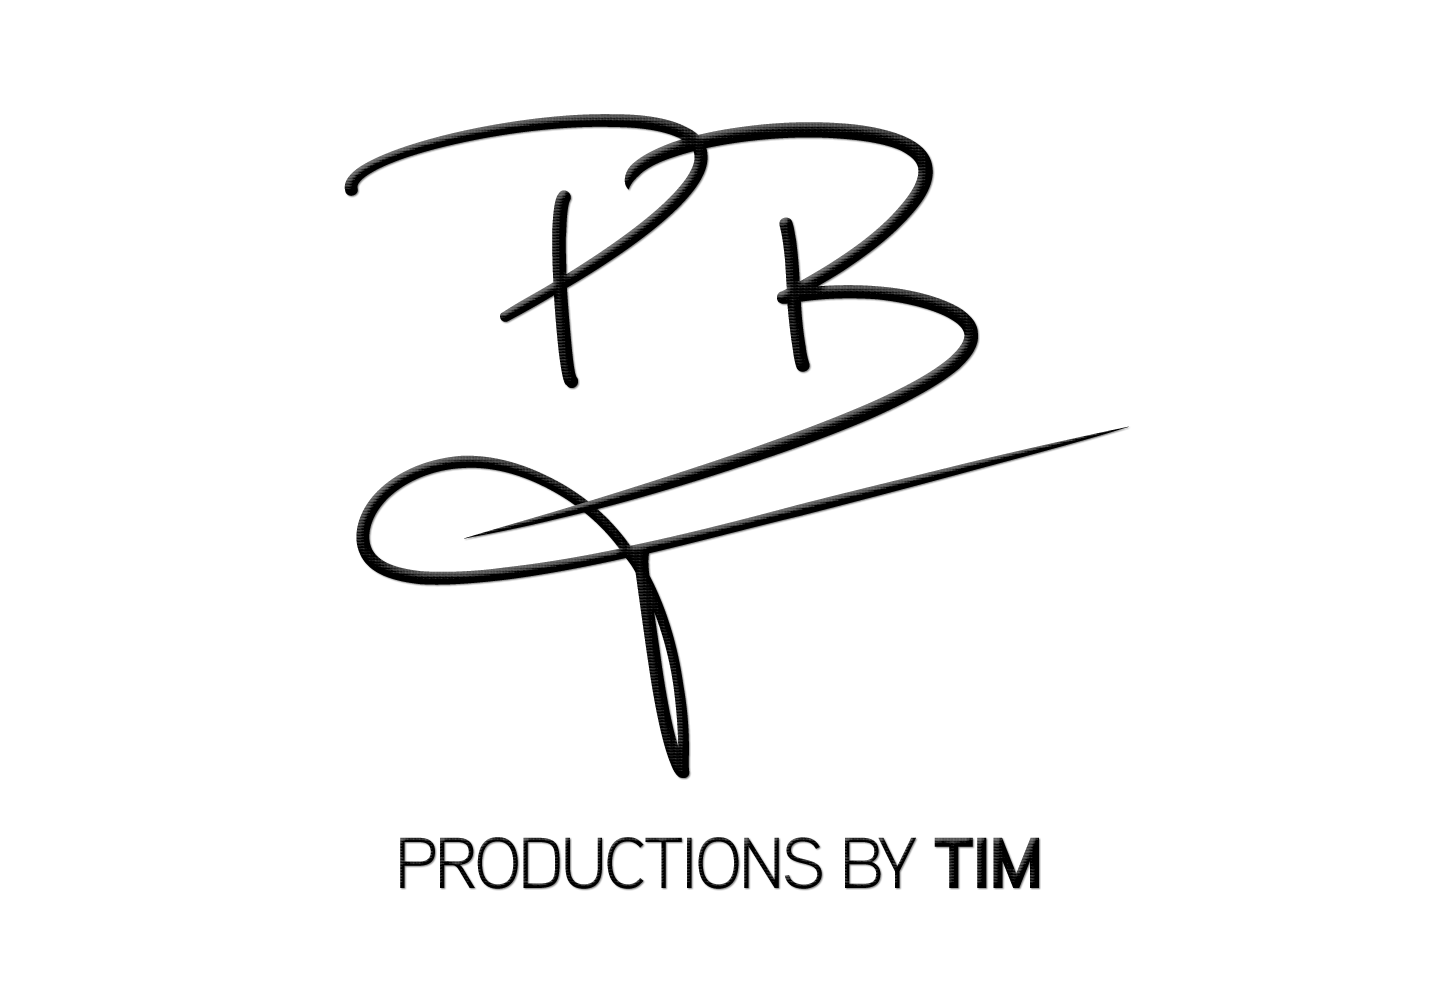 NEW Productions by Tim Logo Badge Black